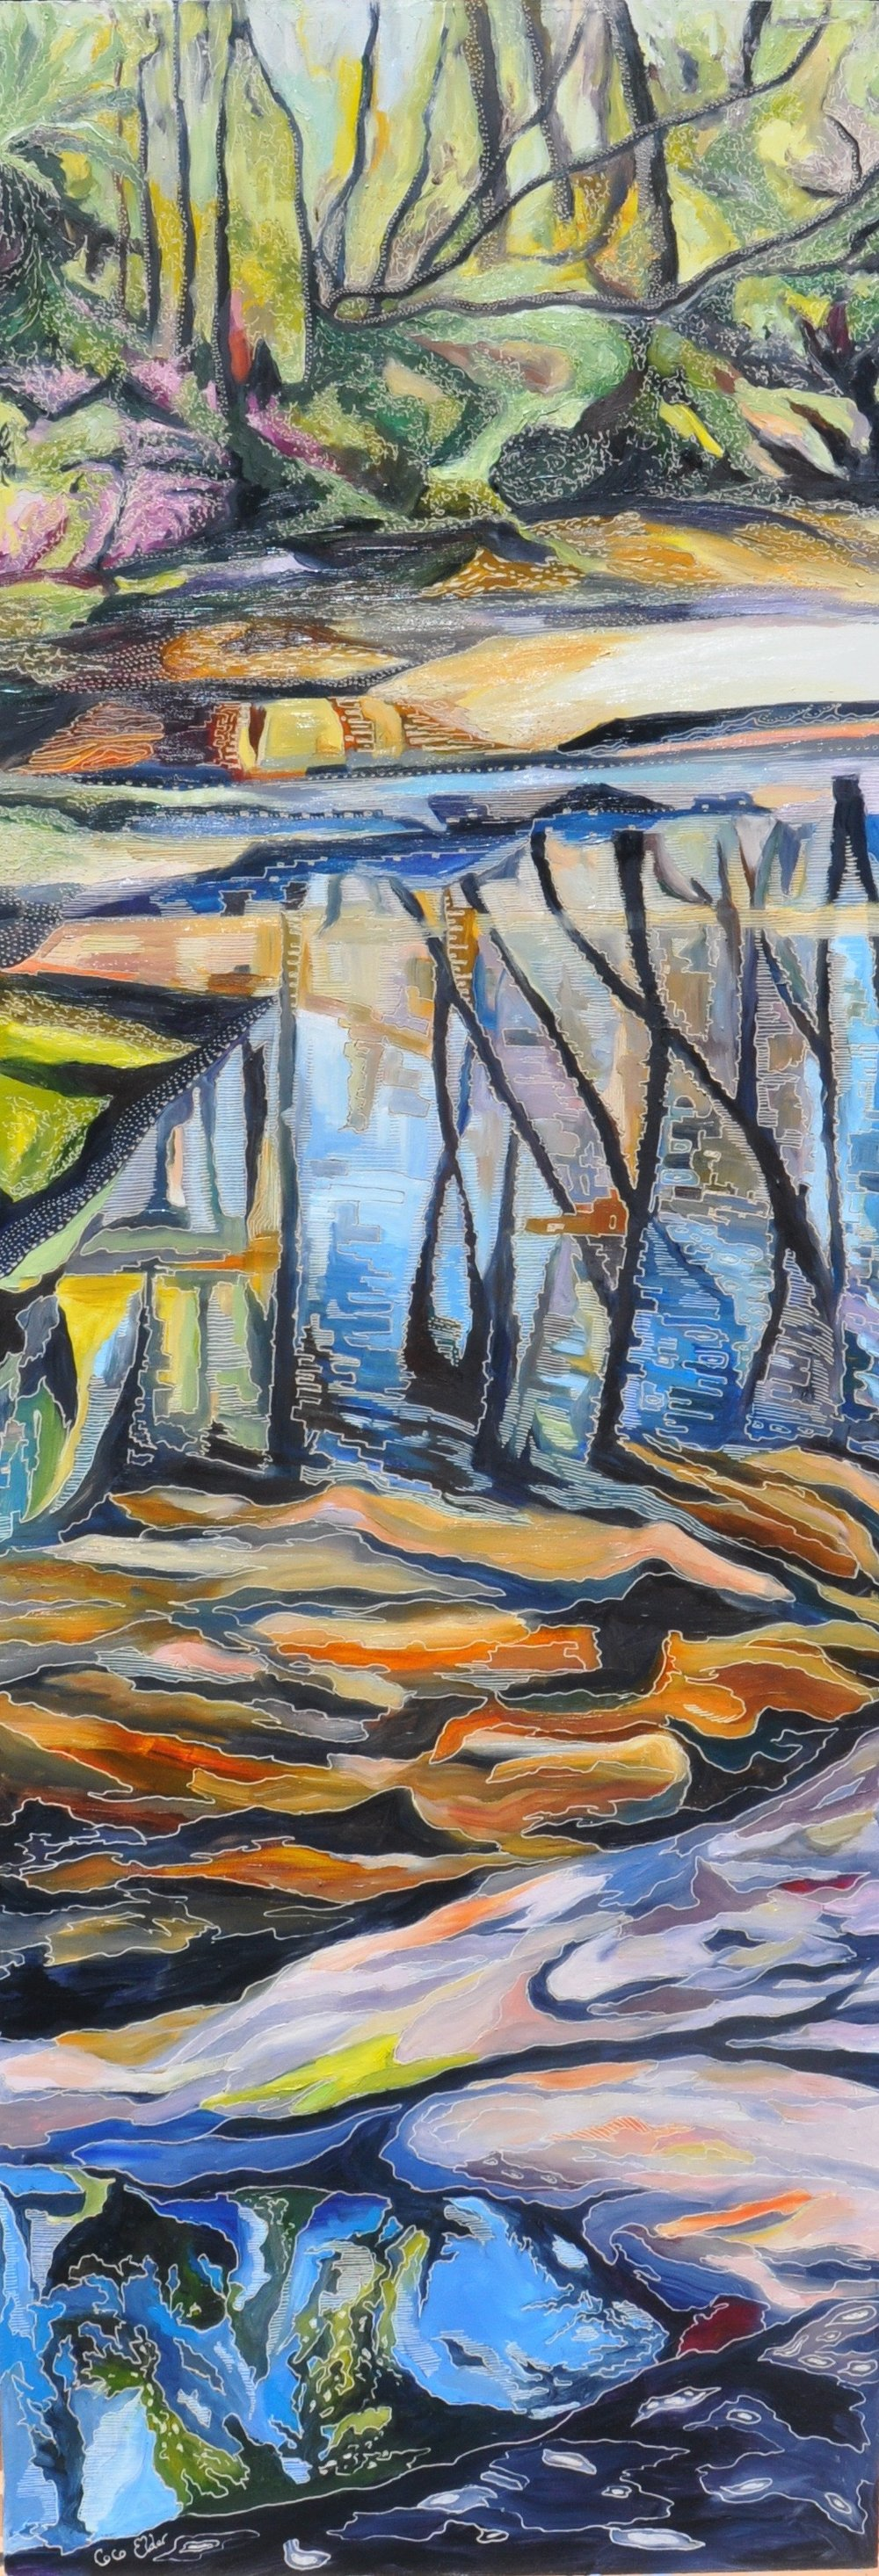 Title: Sliver of Salvation Creek Medium: oil on board carved Dimensions: 40 cm x 120 cm